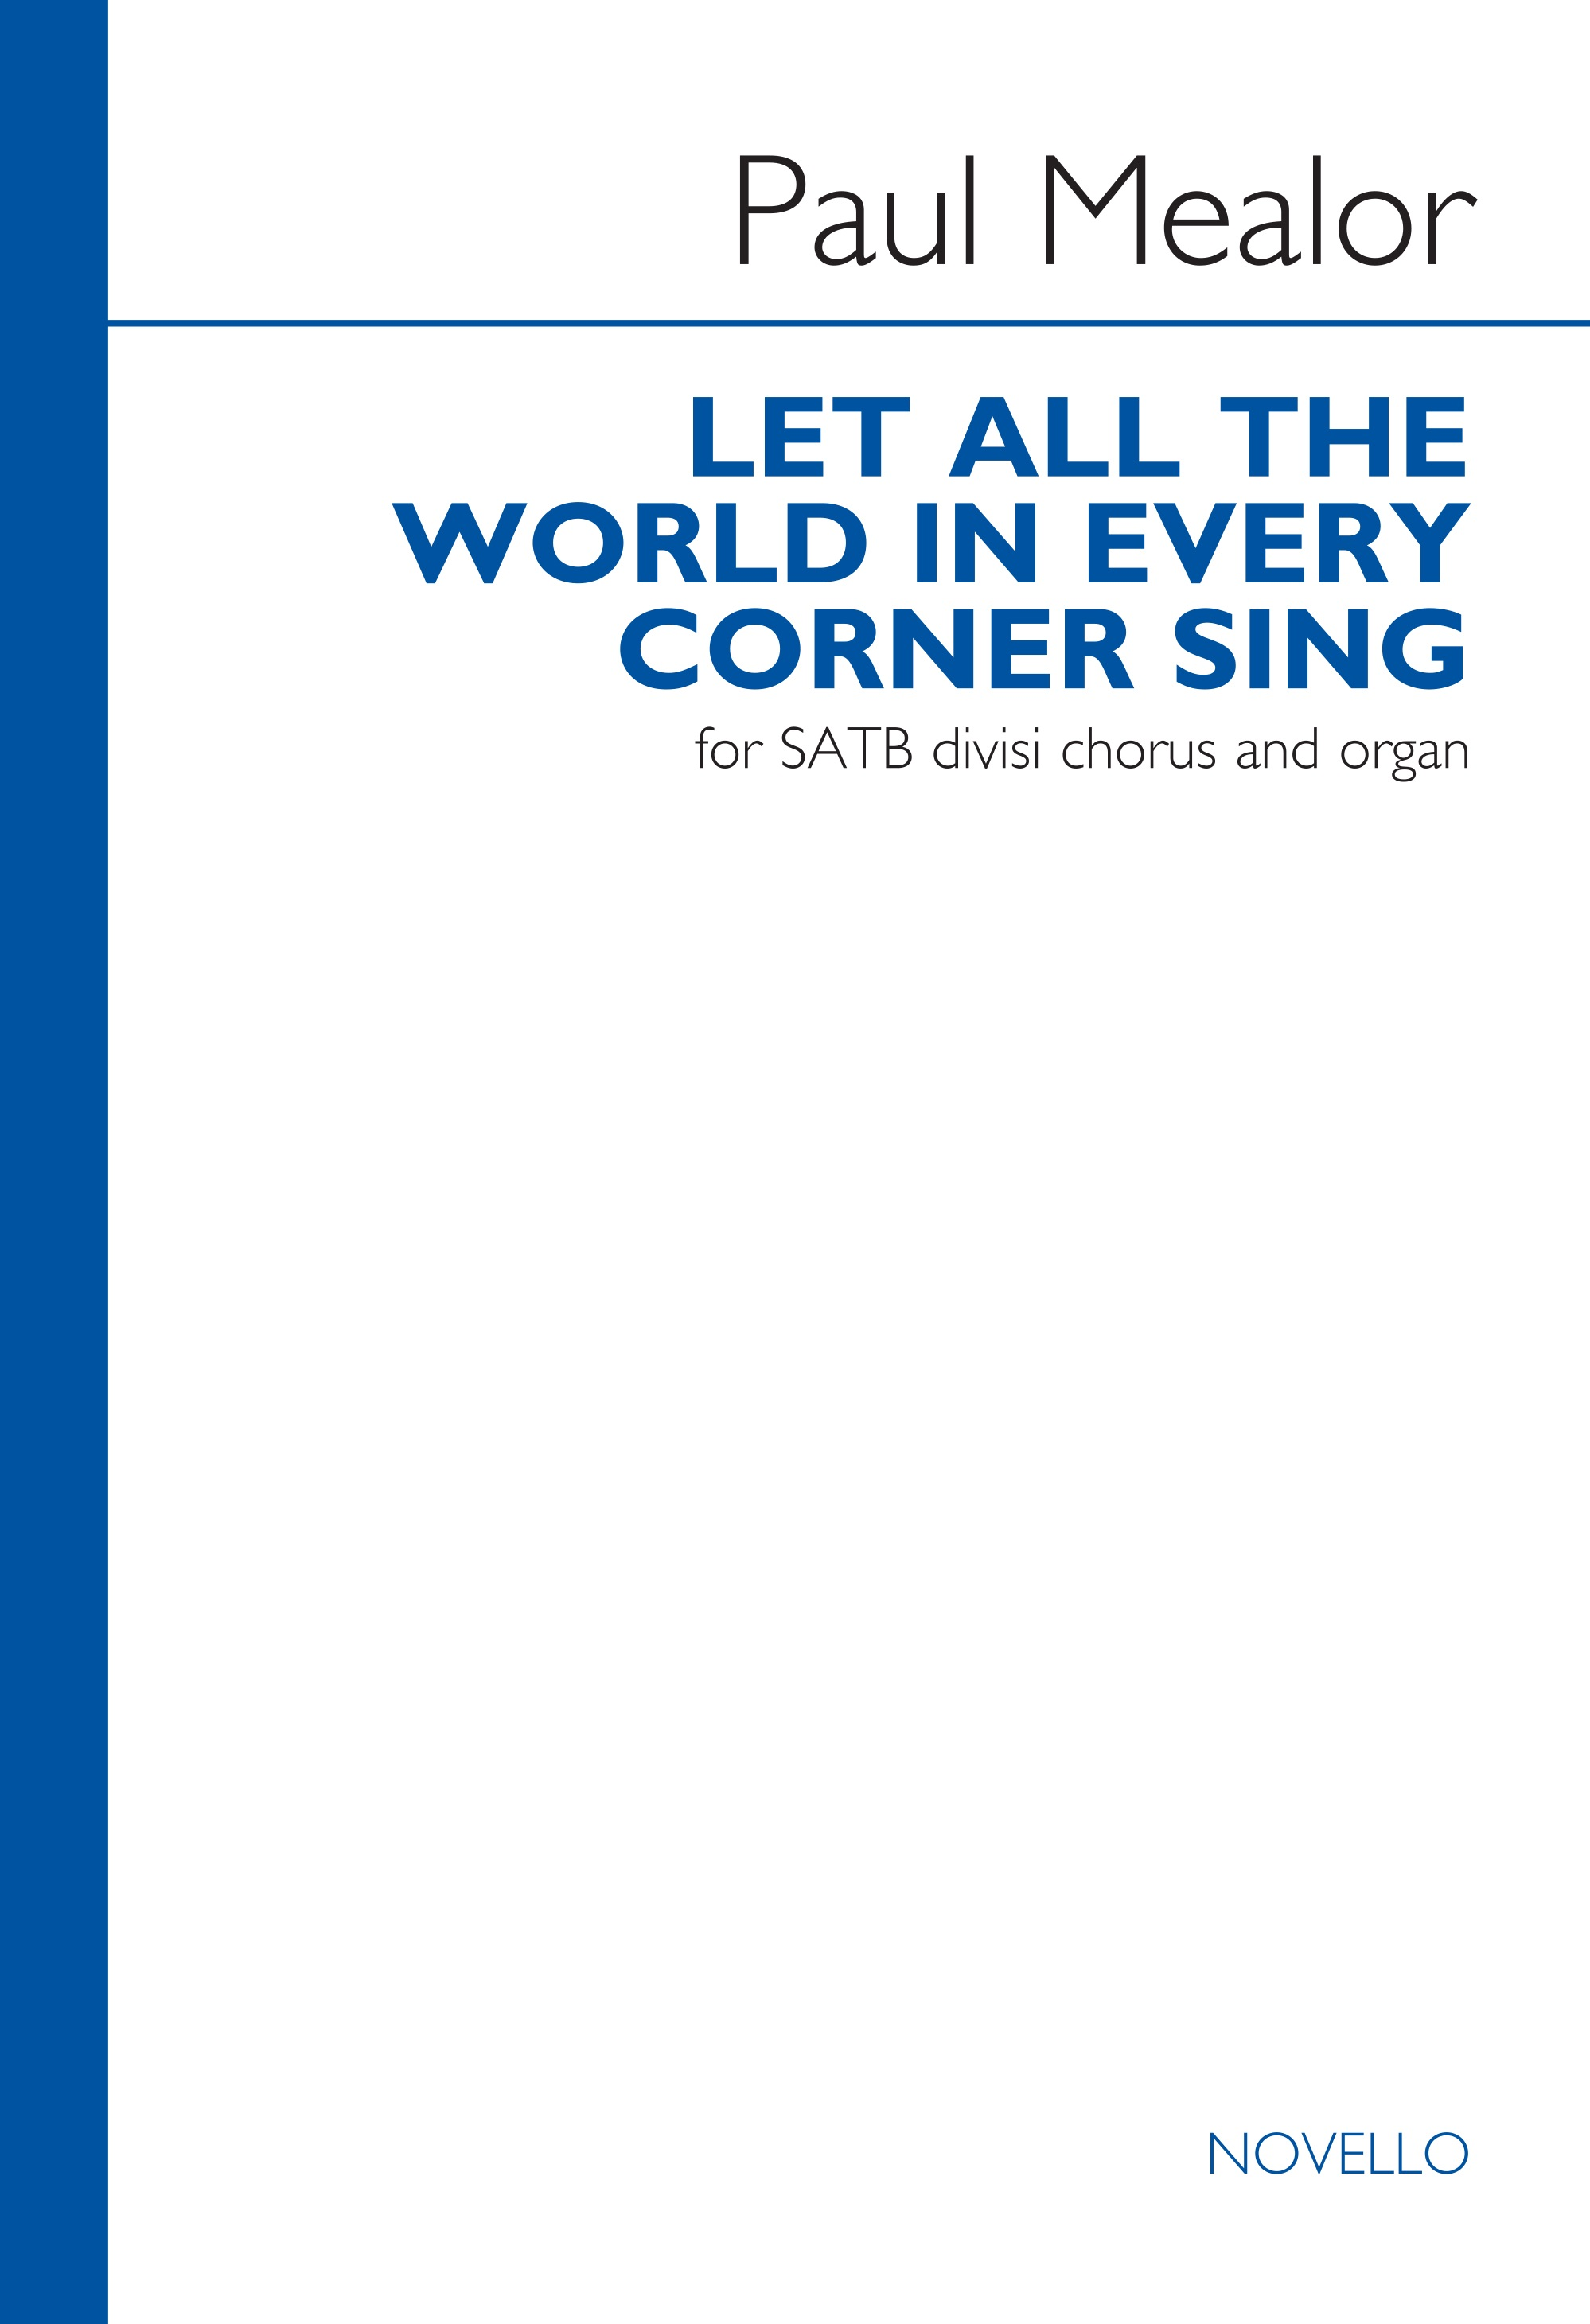 Paul Mealor: Let All The World In Every Corner Sing: SATB: Vocal Score